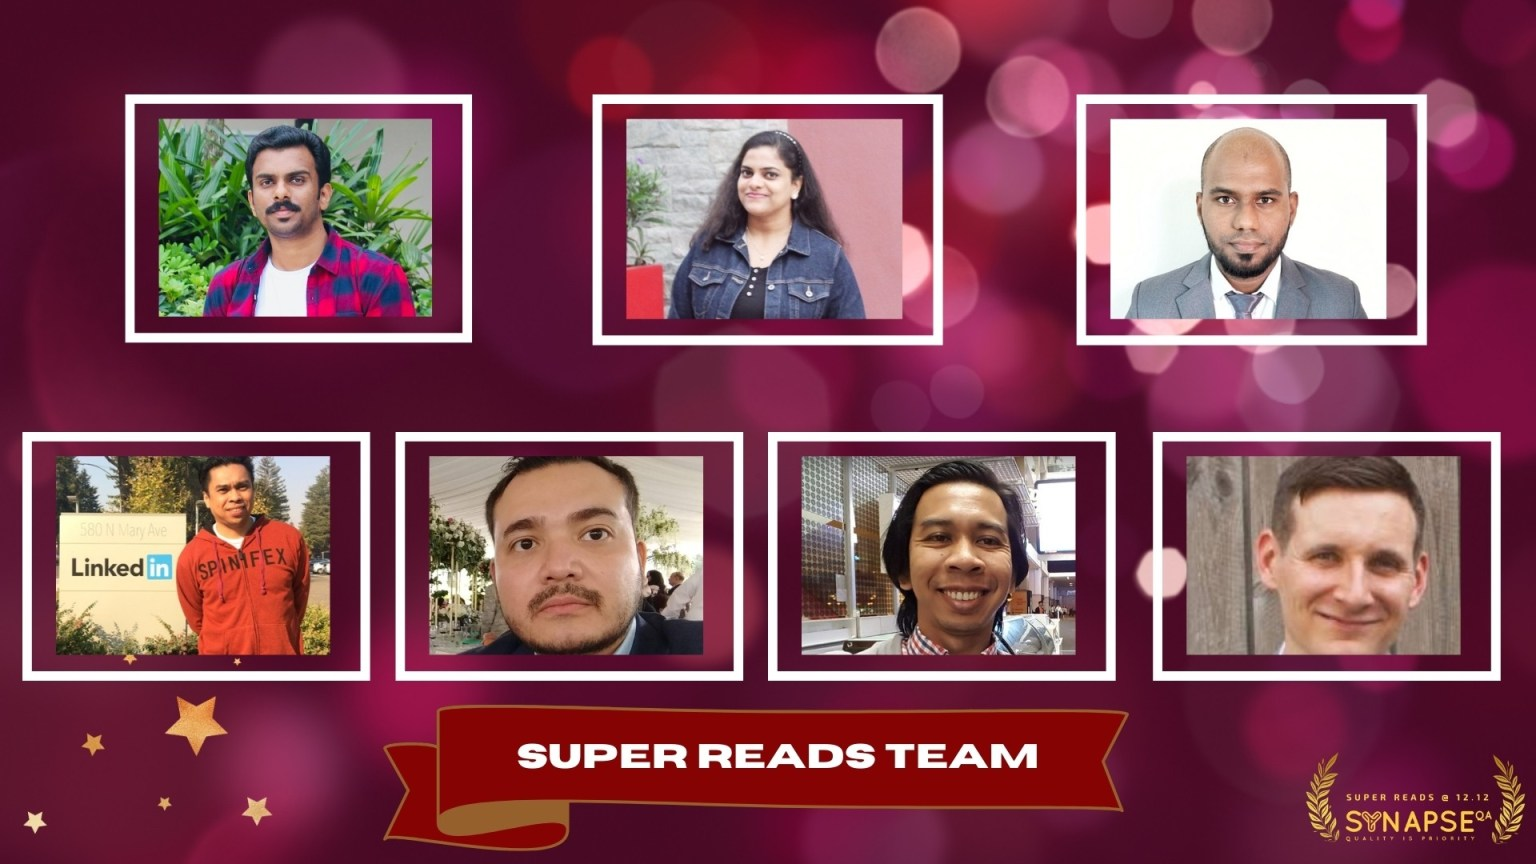 Super Reads Team